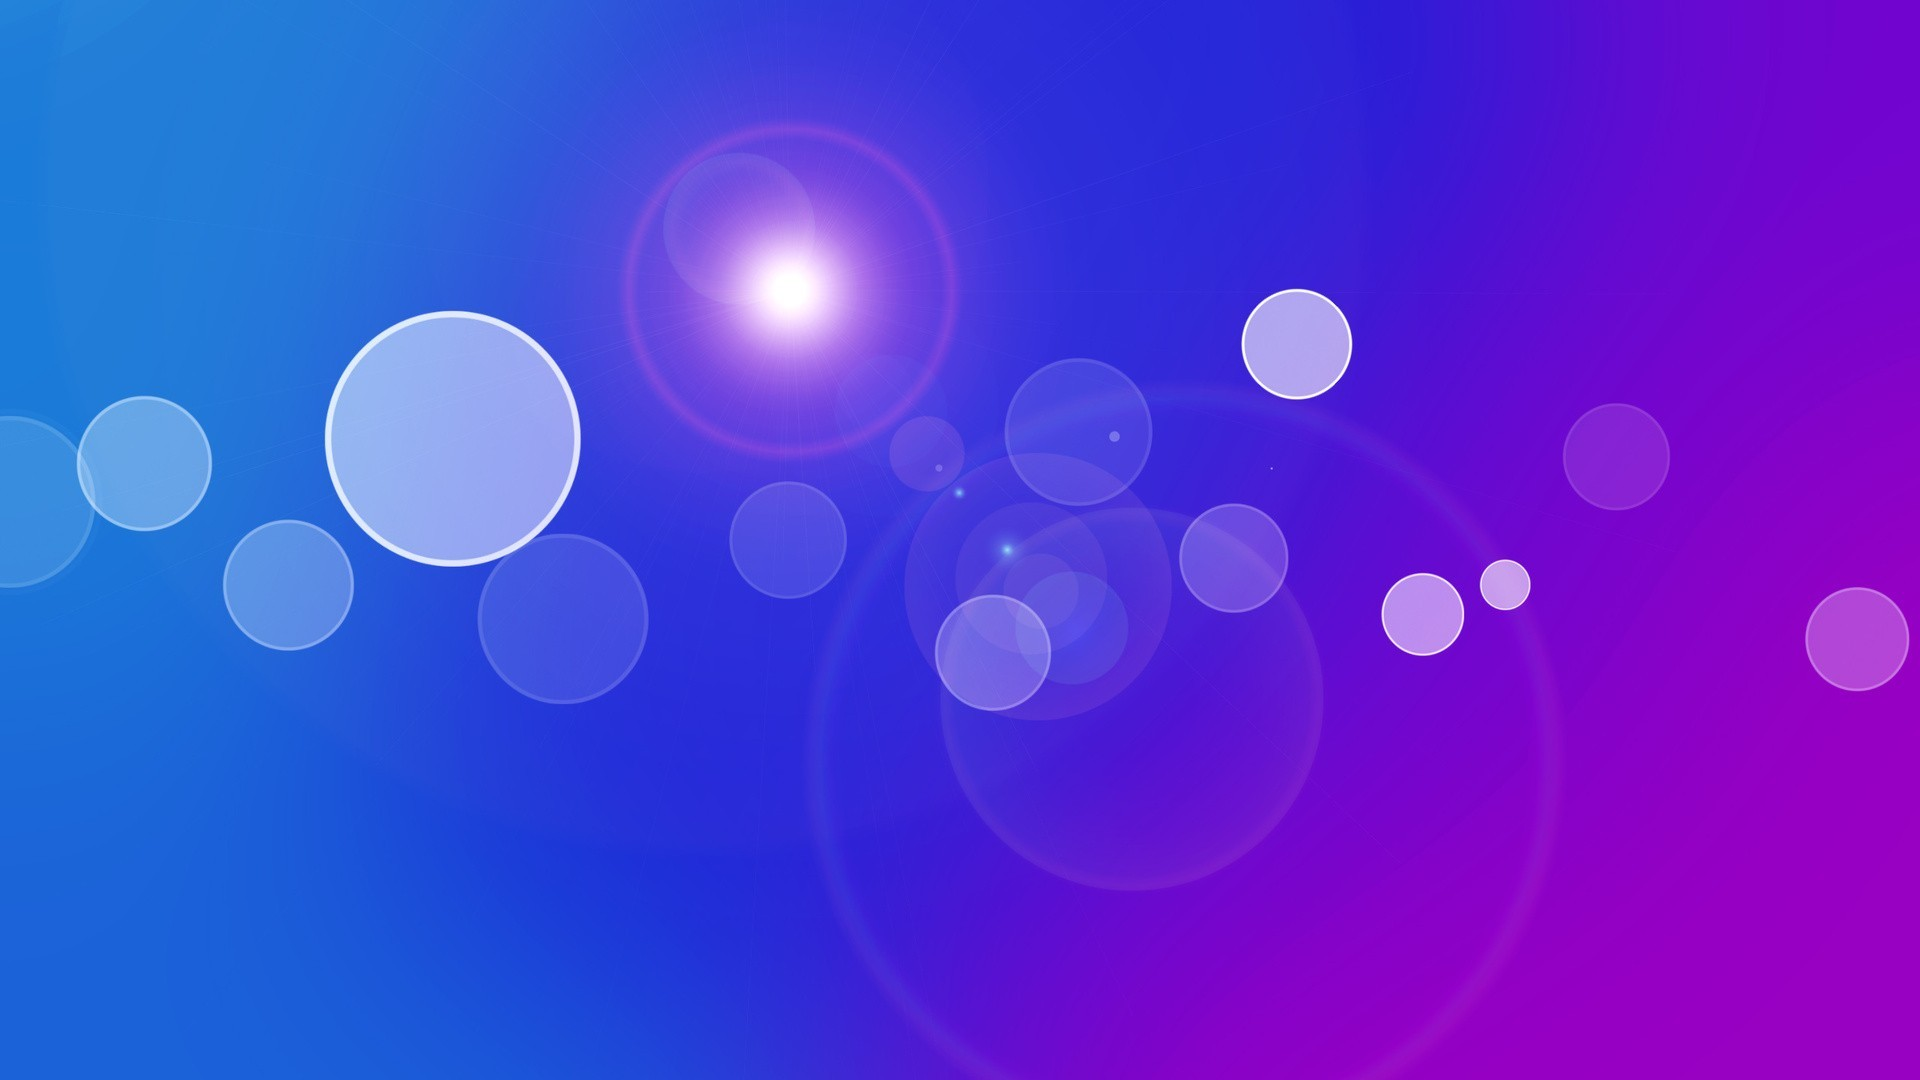 Purple And Blue Wallpaper 77 Images